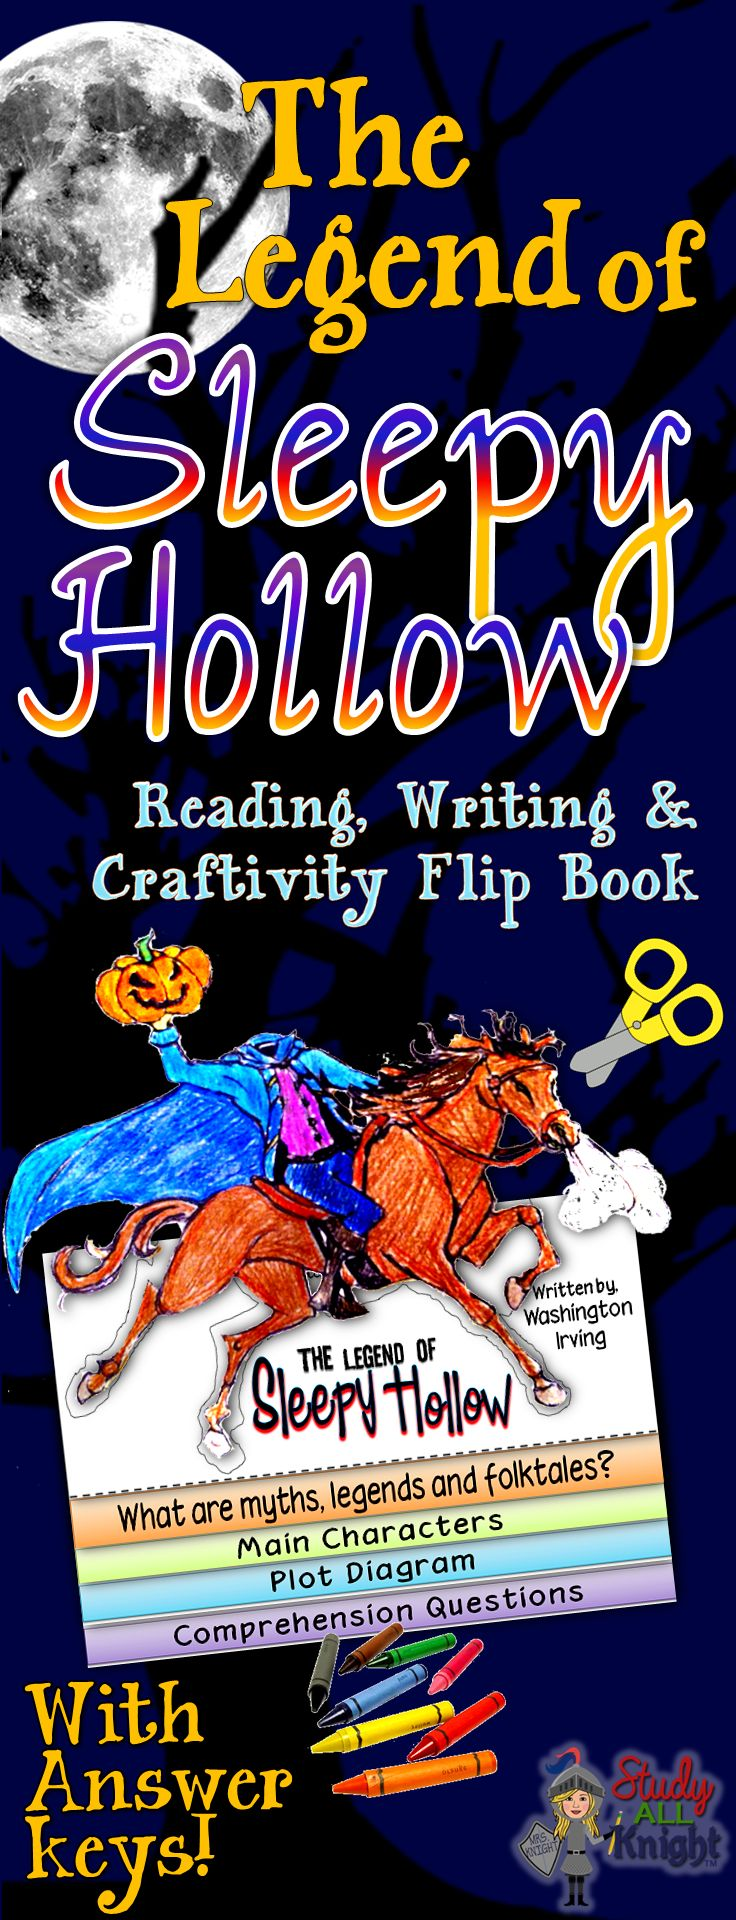 """an analysis of gothocism in sleepy hollow by washington irving """"the legend of sleepy hollow"""" theme analysis essay gothicism was unheard of until  """"the legend of sleepy hollow"""" by washington irving is a short."""